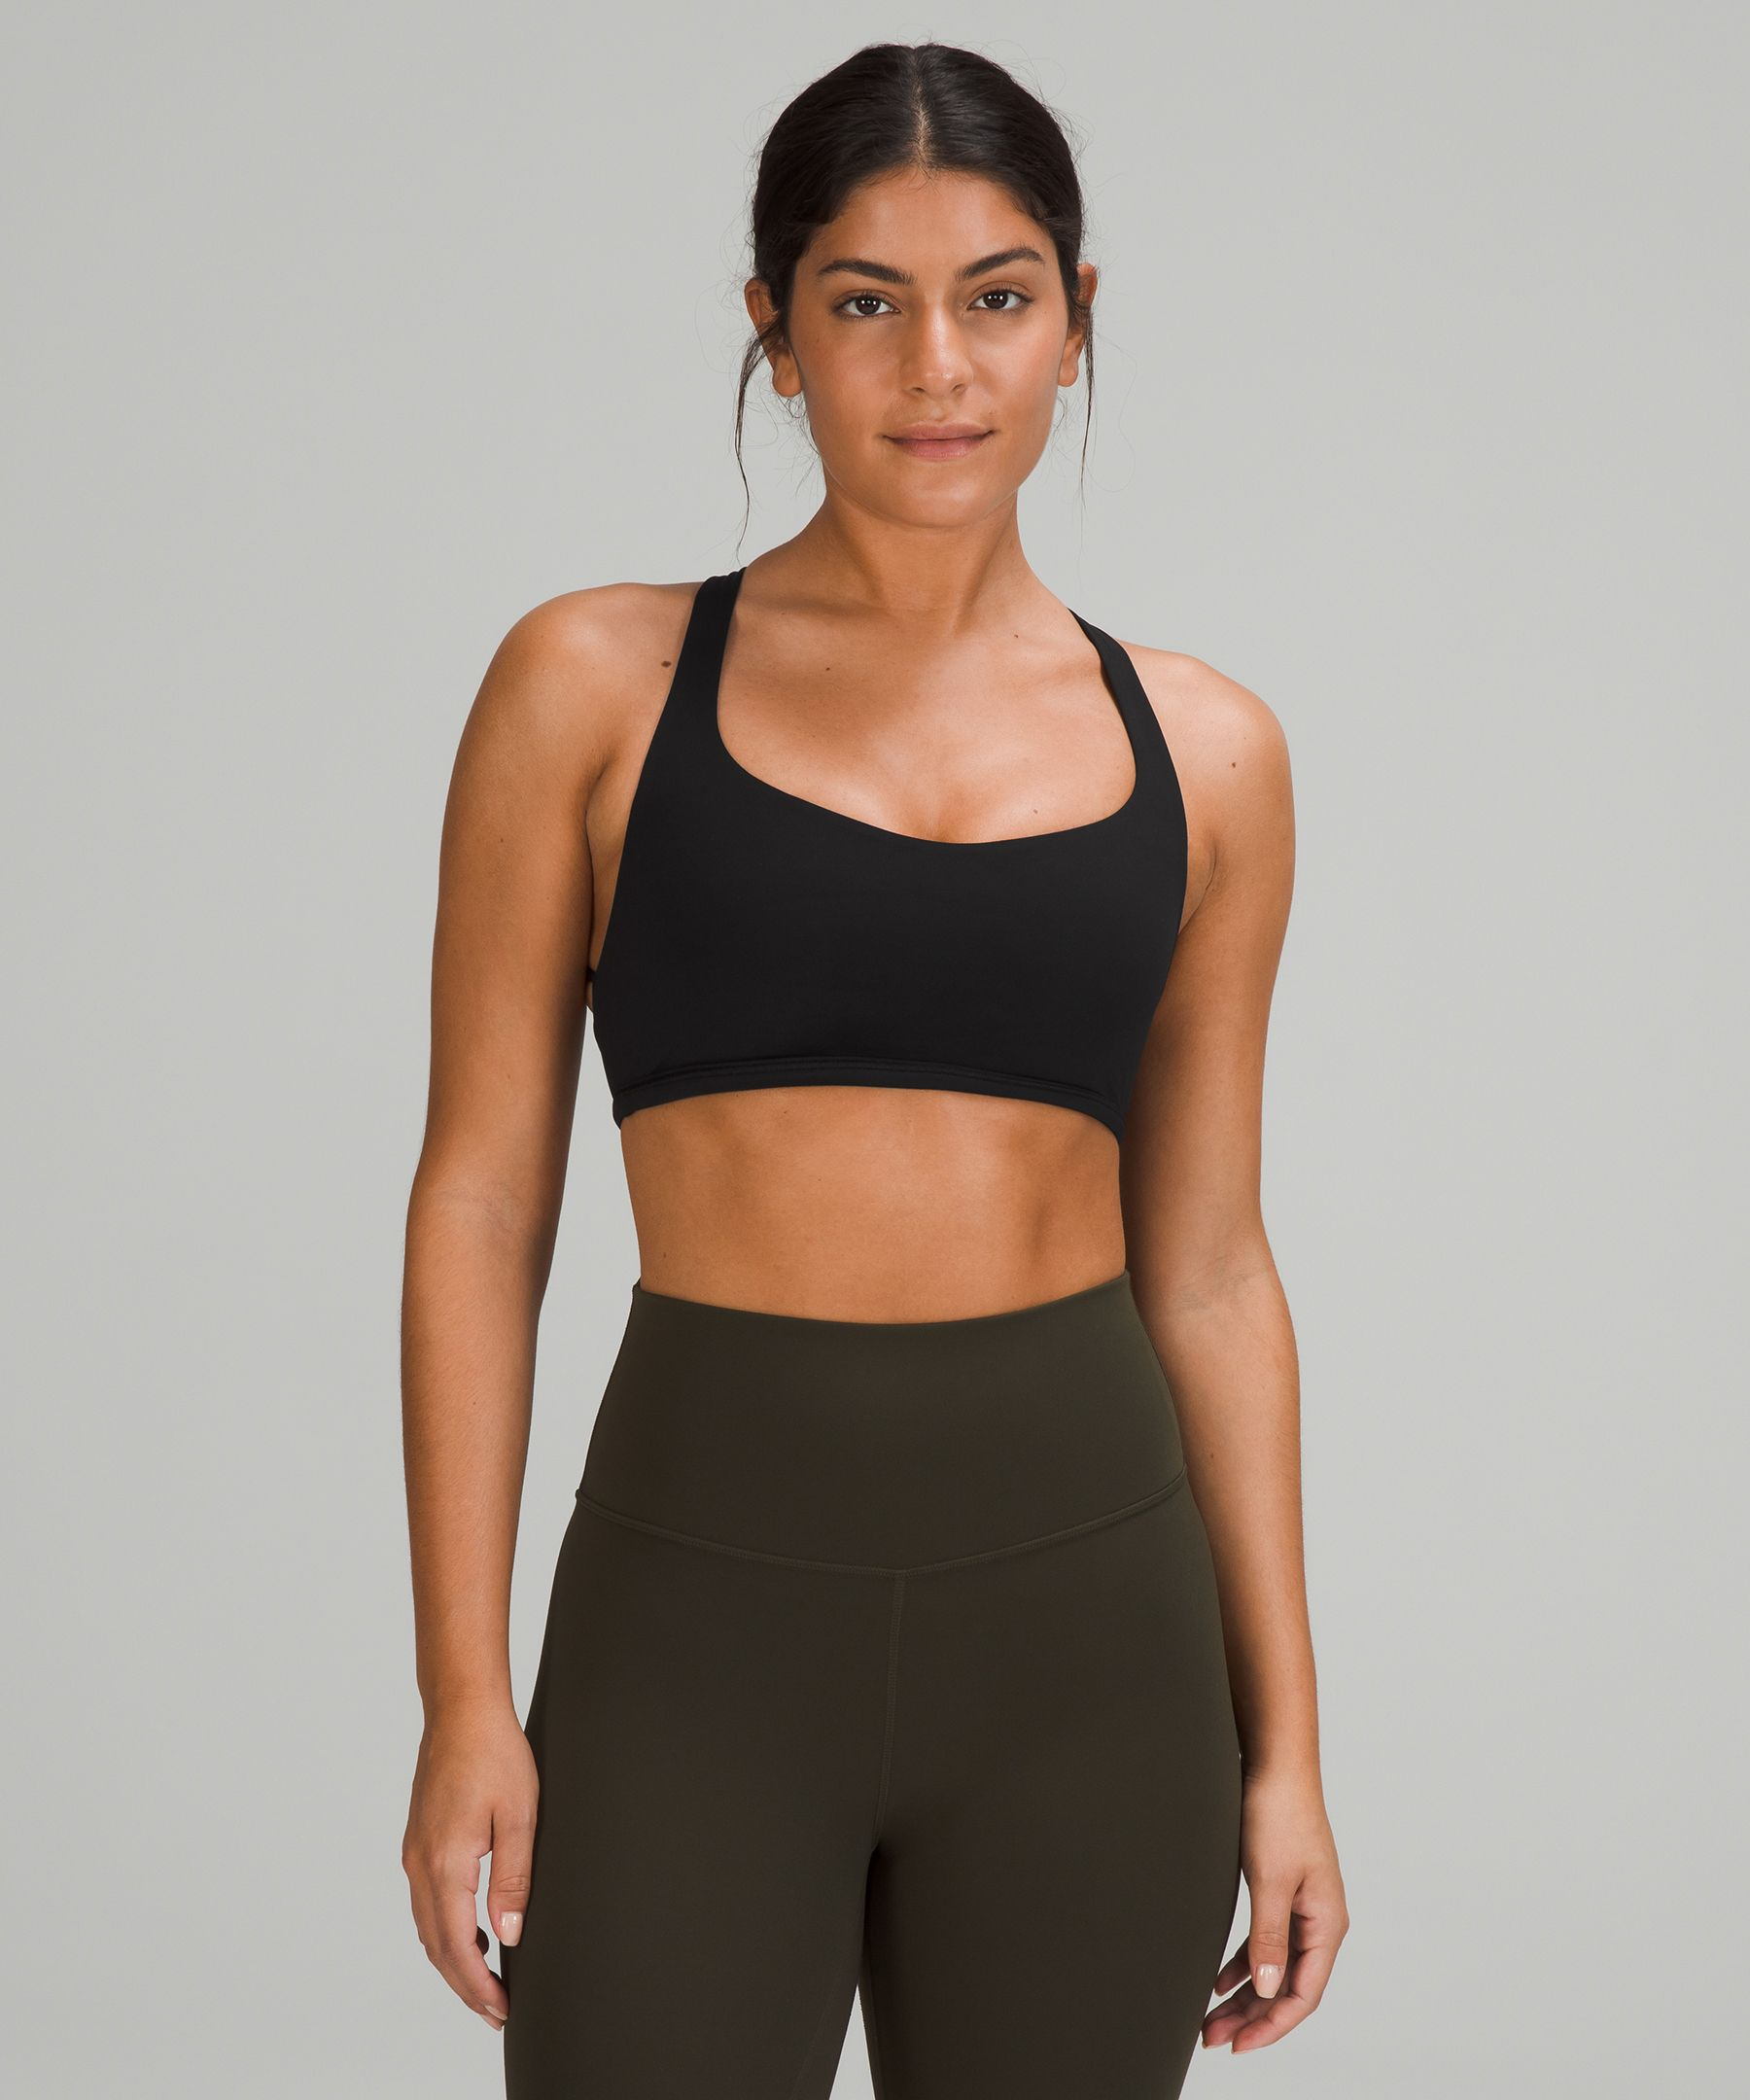 Meet you at yoga This strappy open-back bra is ready for all the ways you move, stretch, and open.